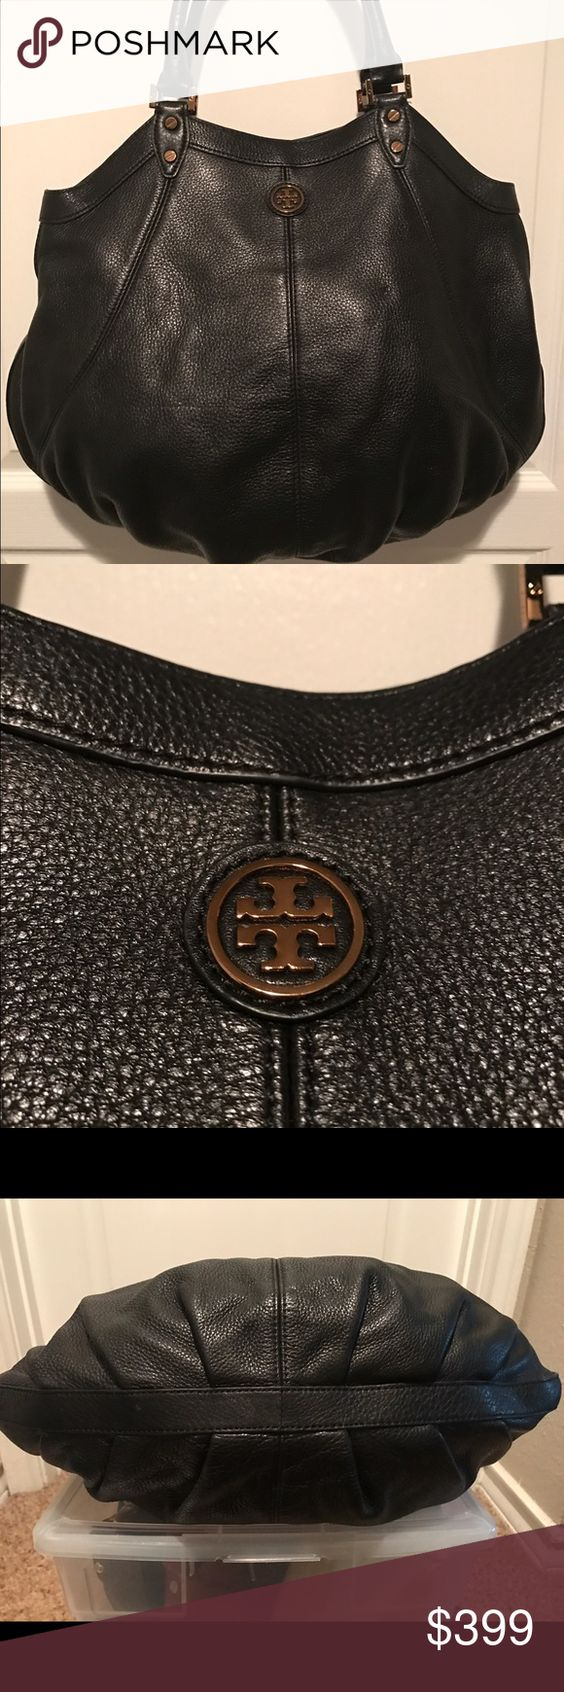 Tory Burch Brand New Hobo Pebbled Leather Bag Tory Burch Brand New Hobo Pebbled Leather Bag Never Used from my sister in Laws collection although many have the original price tags this one does not.  She stored all of her collection in lucite drawers for easy visibility Tory Burch Bags Hobos